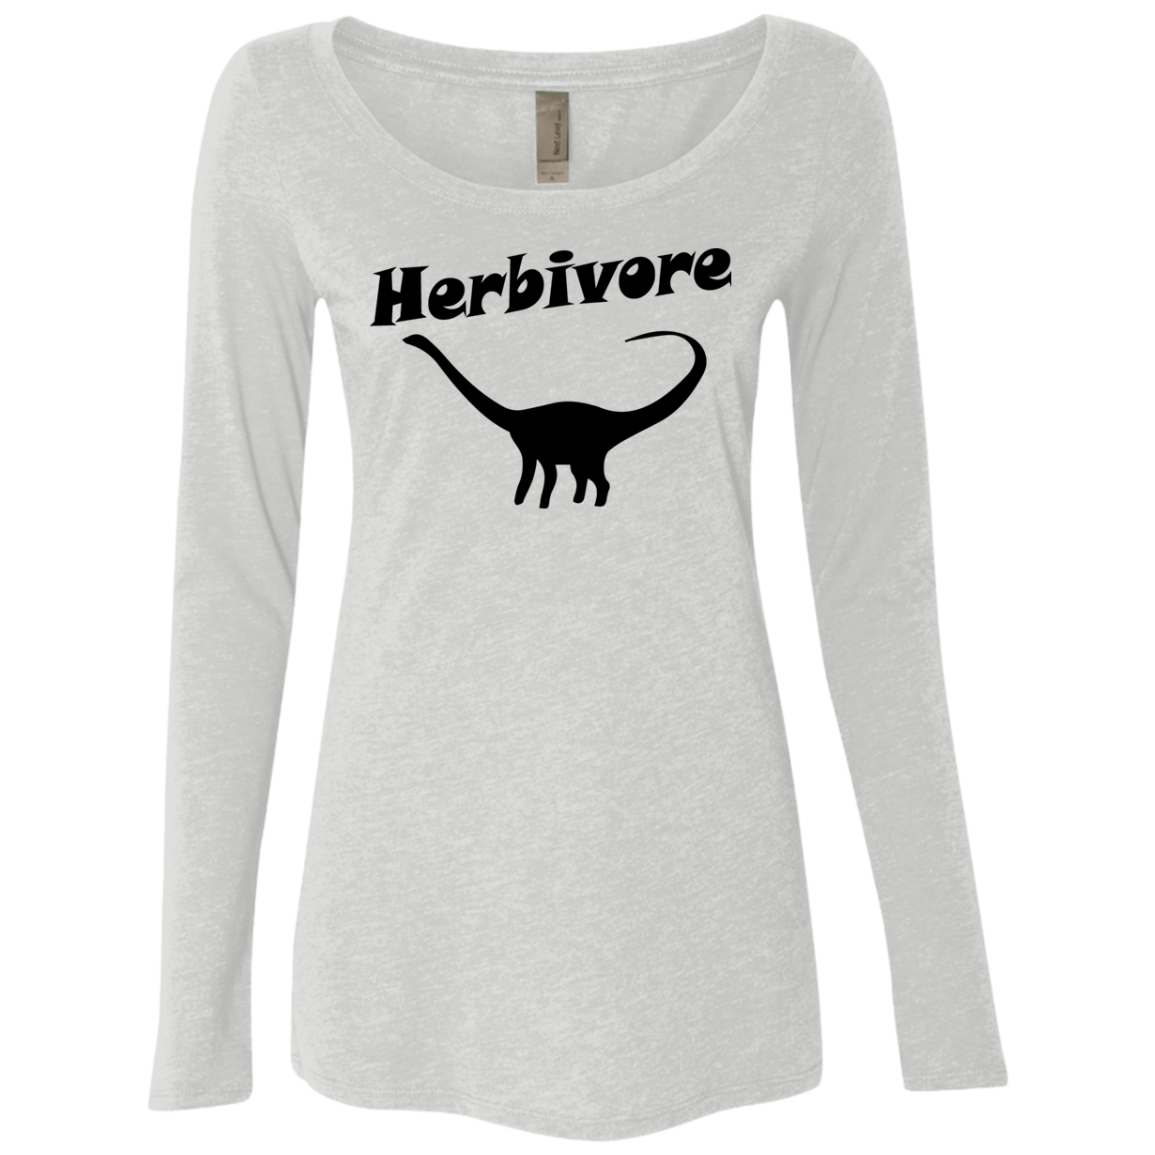 Herbivore Women's Long Sleeve Tee